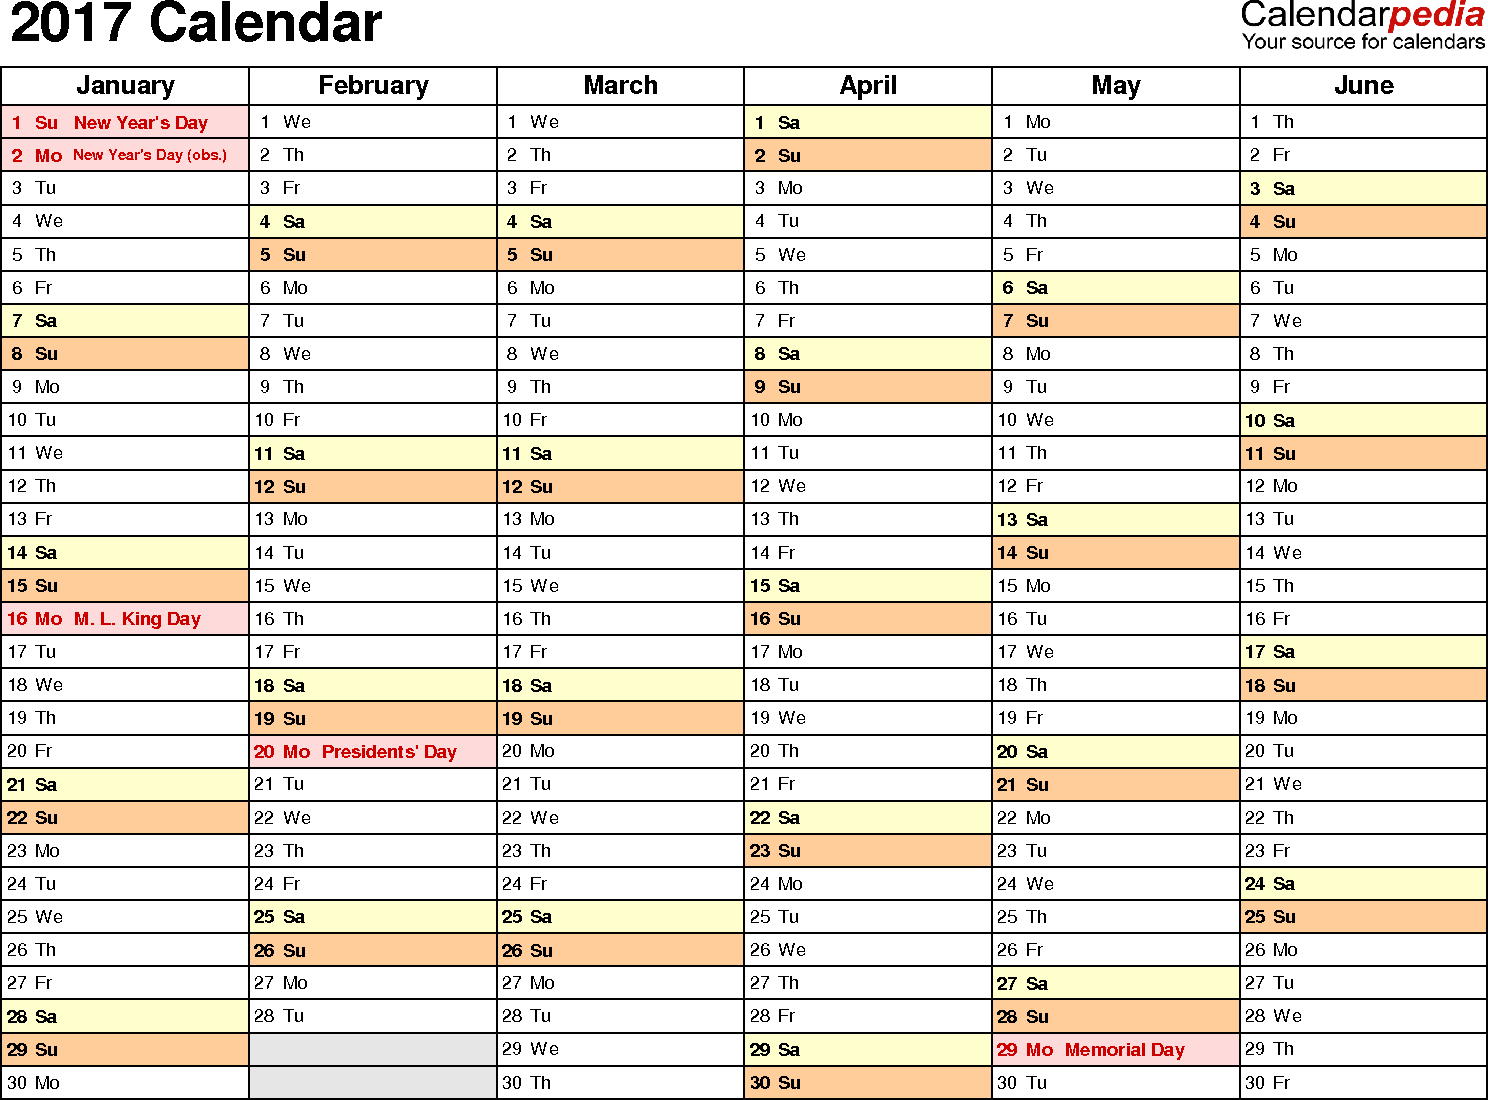 Ediblewildsus  Splendid  Calendar  Download  Free Printable Excel Templates Xls With Outstanding Template   Calendar For Excel Months Horizontally  Pages Landscape Orientation With Breathtaking Populate In Excel Also One Way Data Table Excel In Addition Excel Learning Sites And Unlock Excel Password Free As Well As When Sorting In Excel It Arranges Records In A Table Additionally Remove Sort In Excel From Calendarpediacom With Ediblewildsus  Outstanding  Calendar  Download  Free Printable Excel Templates Xls With Breathtaking Template   Calendar For Excel Months Horizontally  Pages Landscape Orientation And Splendid Populate In Excel Also One Way Data Table Excel In Addition Excel Learning Sites From Calendarpediacom